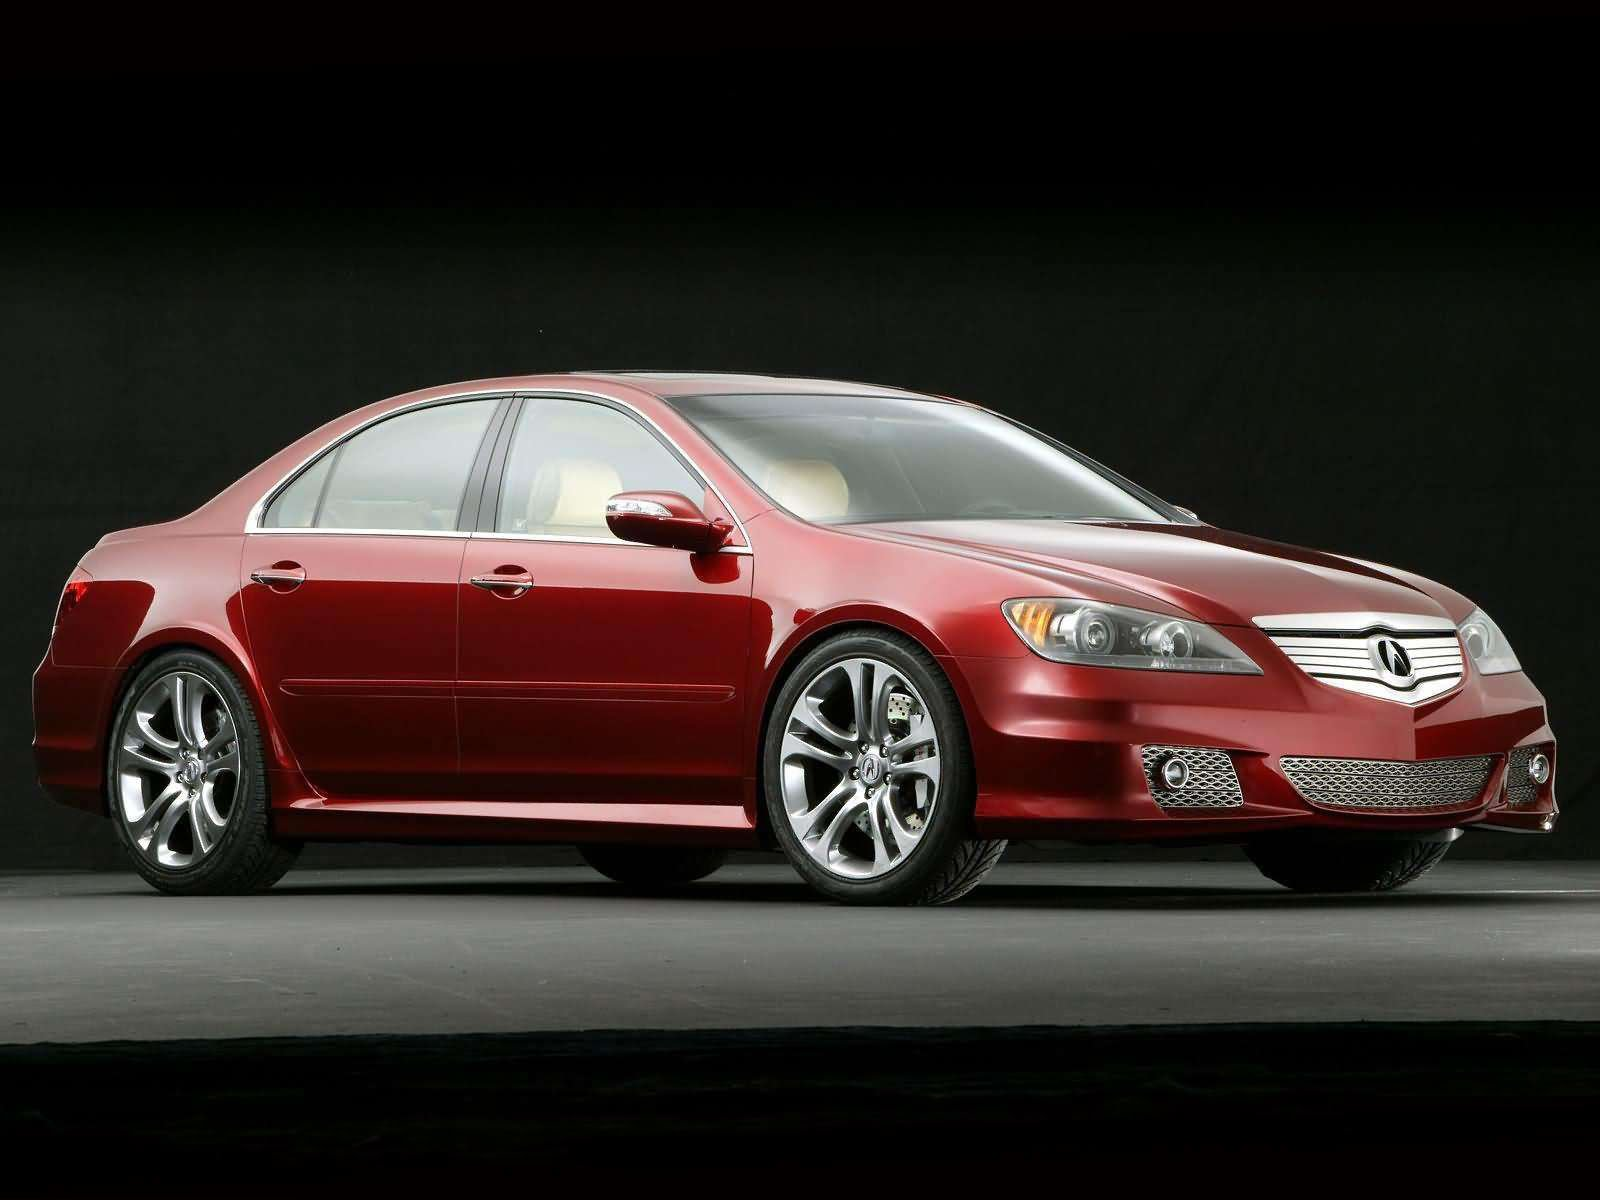 Latest 2005 Acura Rl Aspec Concept Japanese Car Wallpapers Free Download